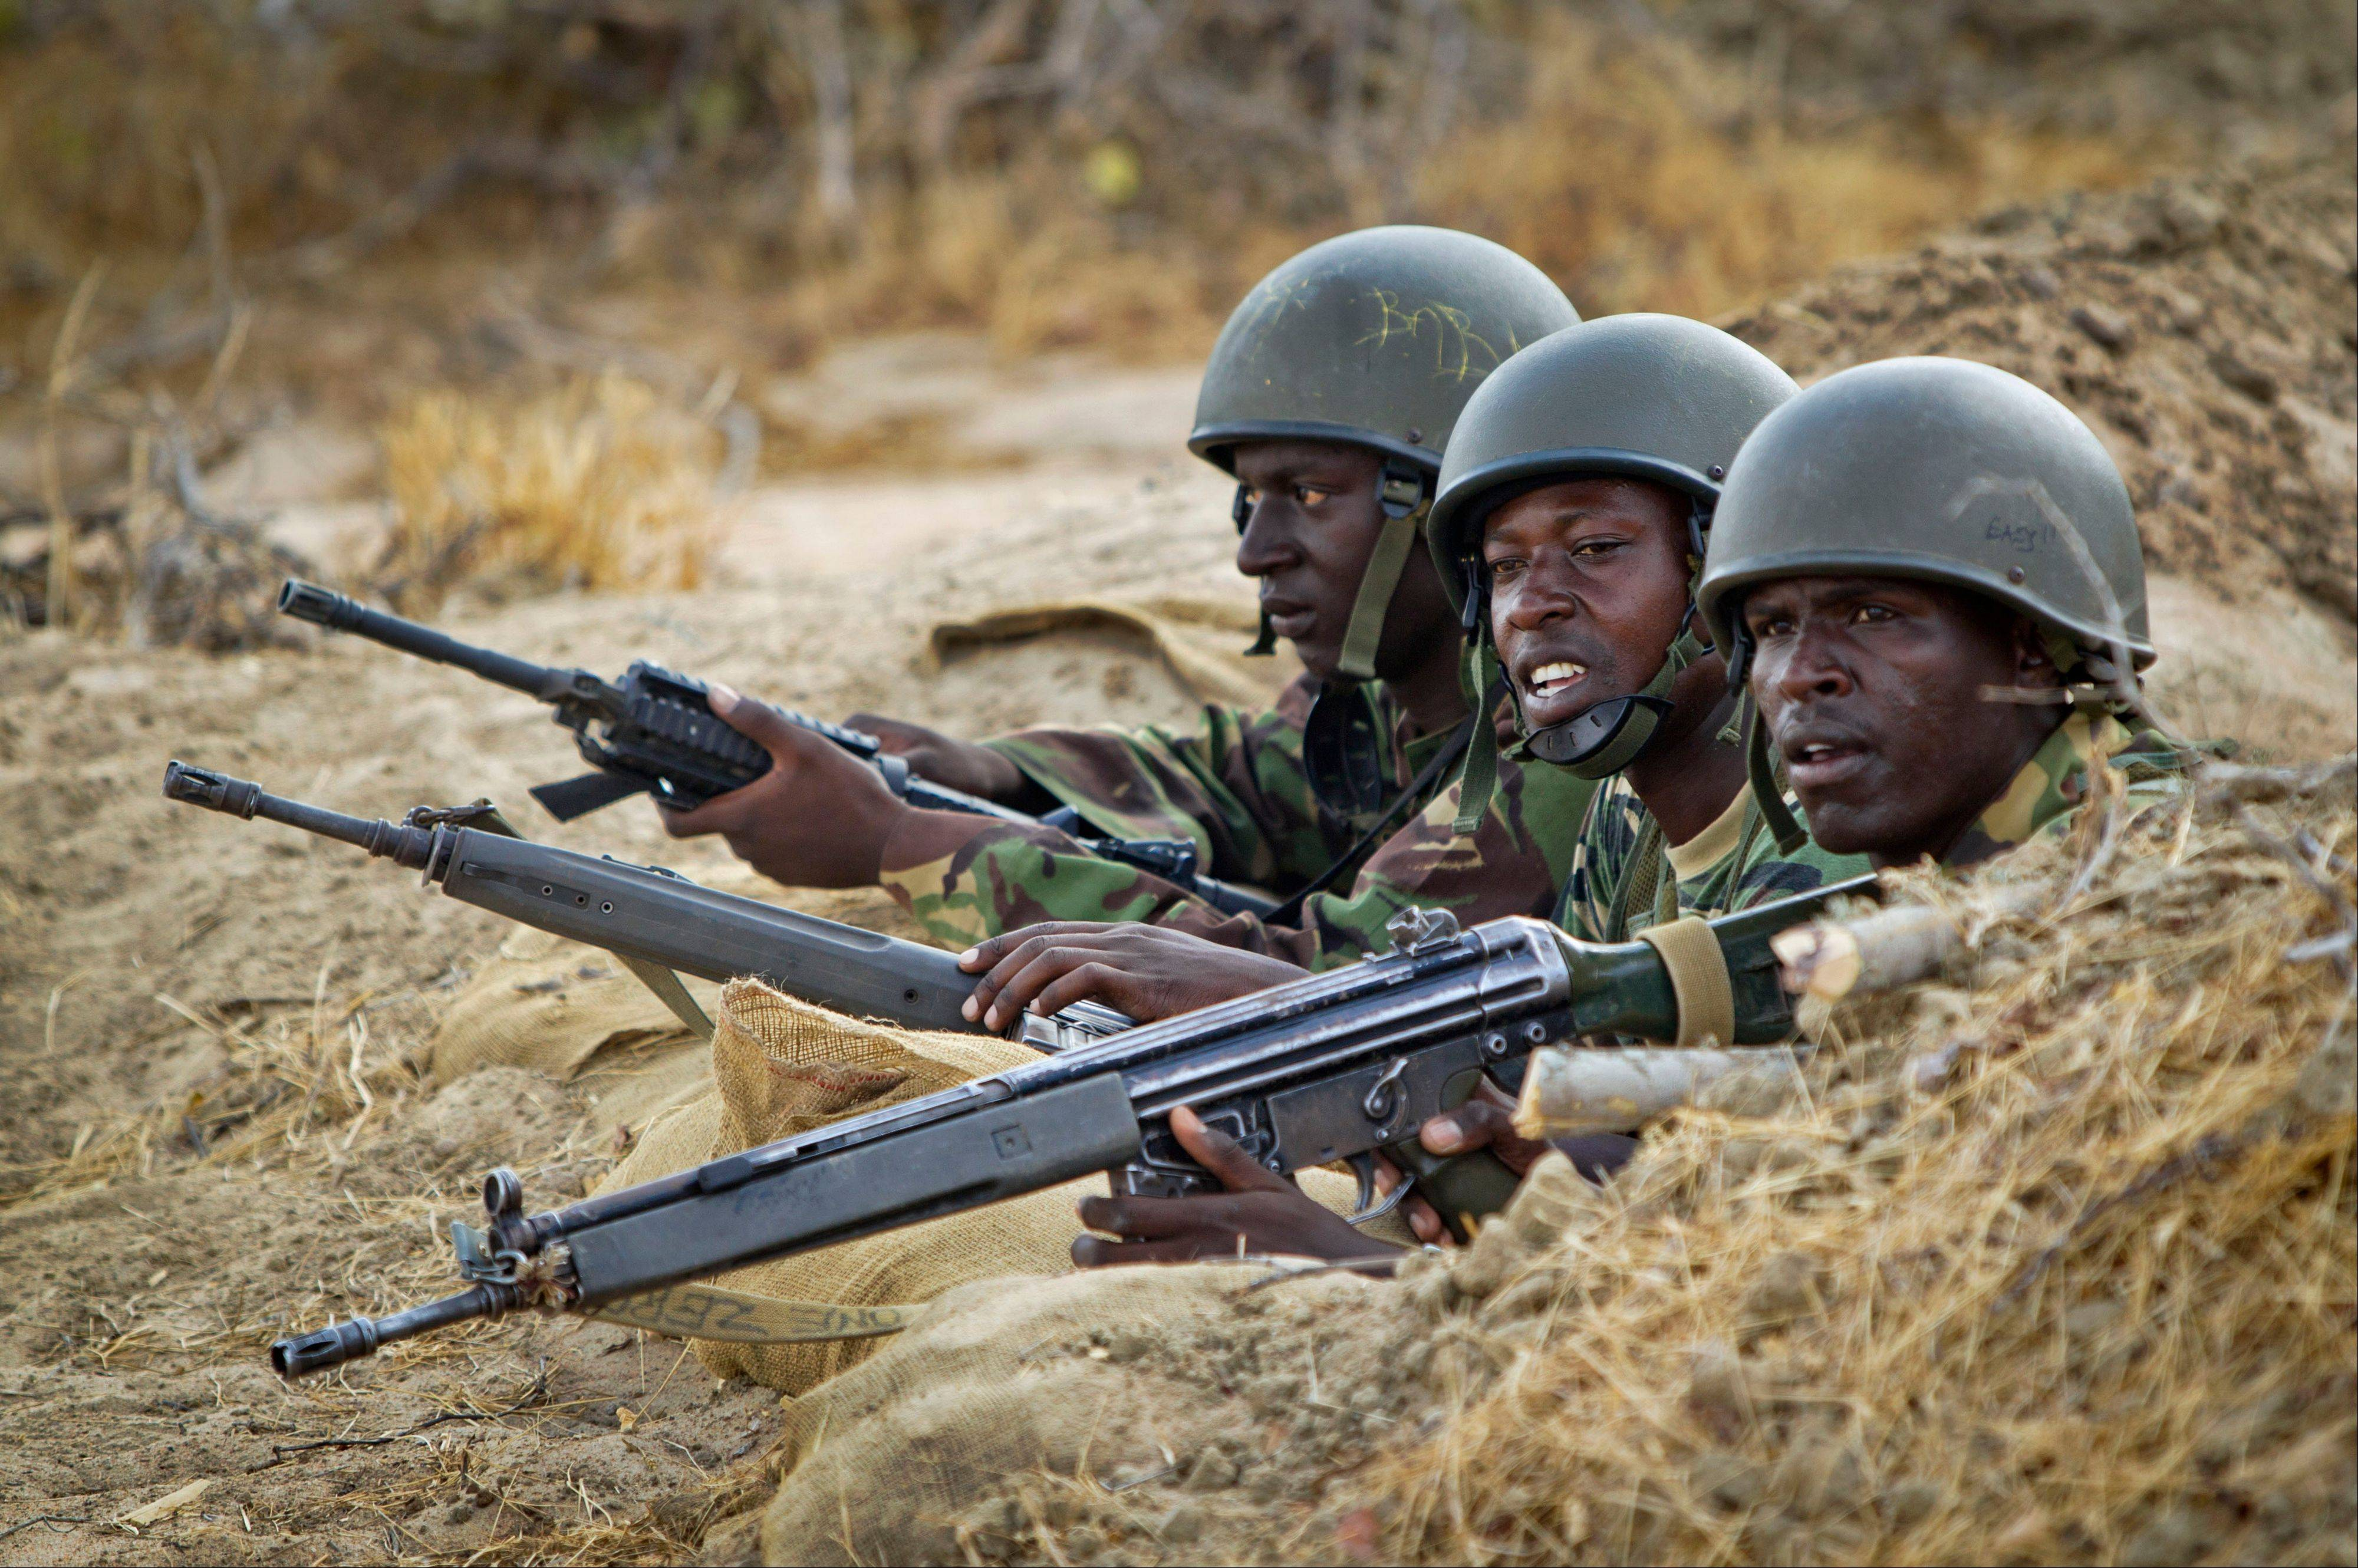 Kenyan army soldiers stand in a dugout position at their base in Tabda, inside Somalia. The Kenyan military said Friday that it has killed at least 30 Islamic militants in an airstrike on a militant camp in Garbarahey in the Gedo region of Somalia on Thursday, where a meeting was being held.